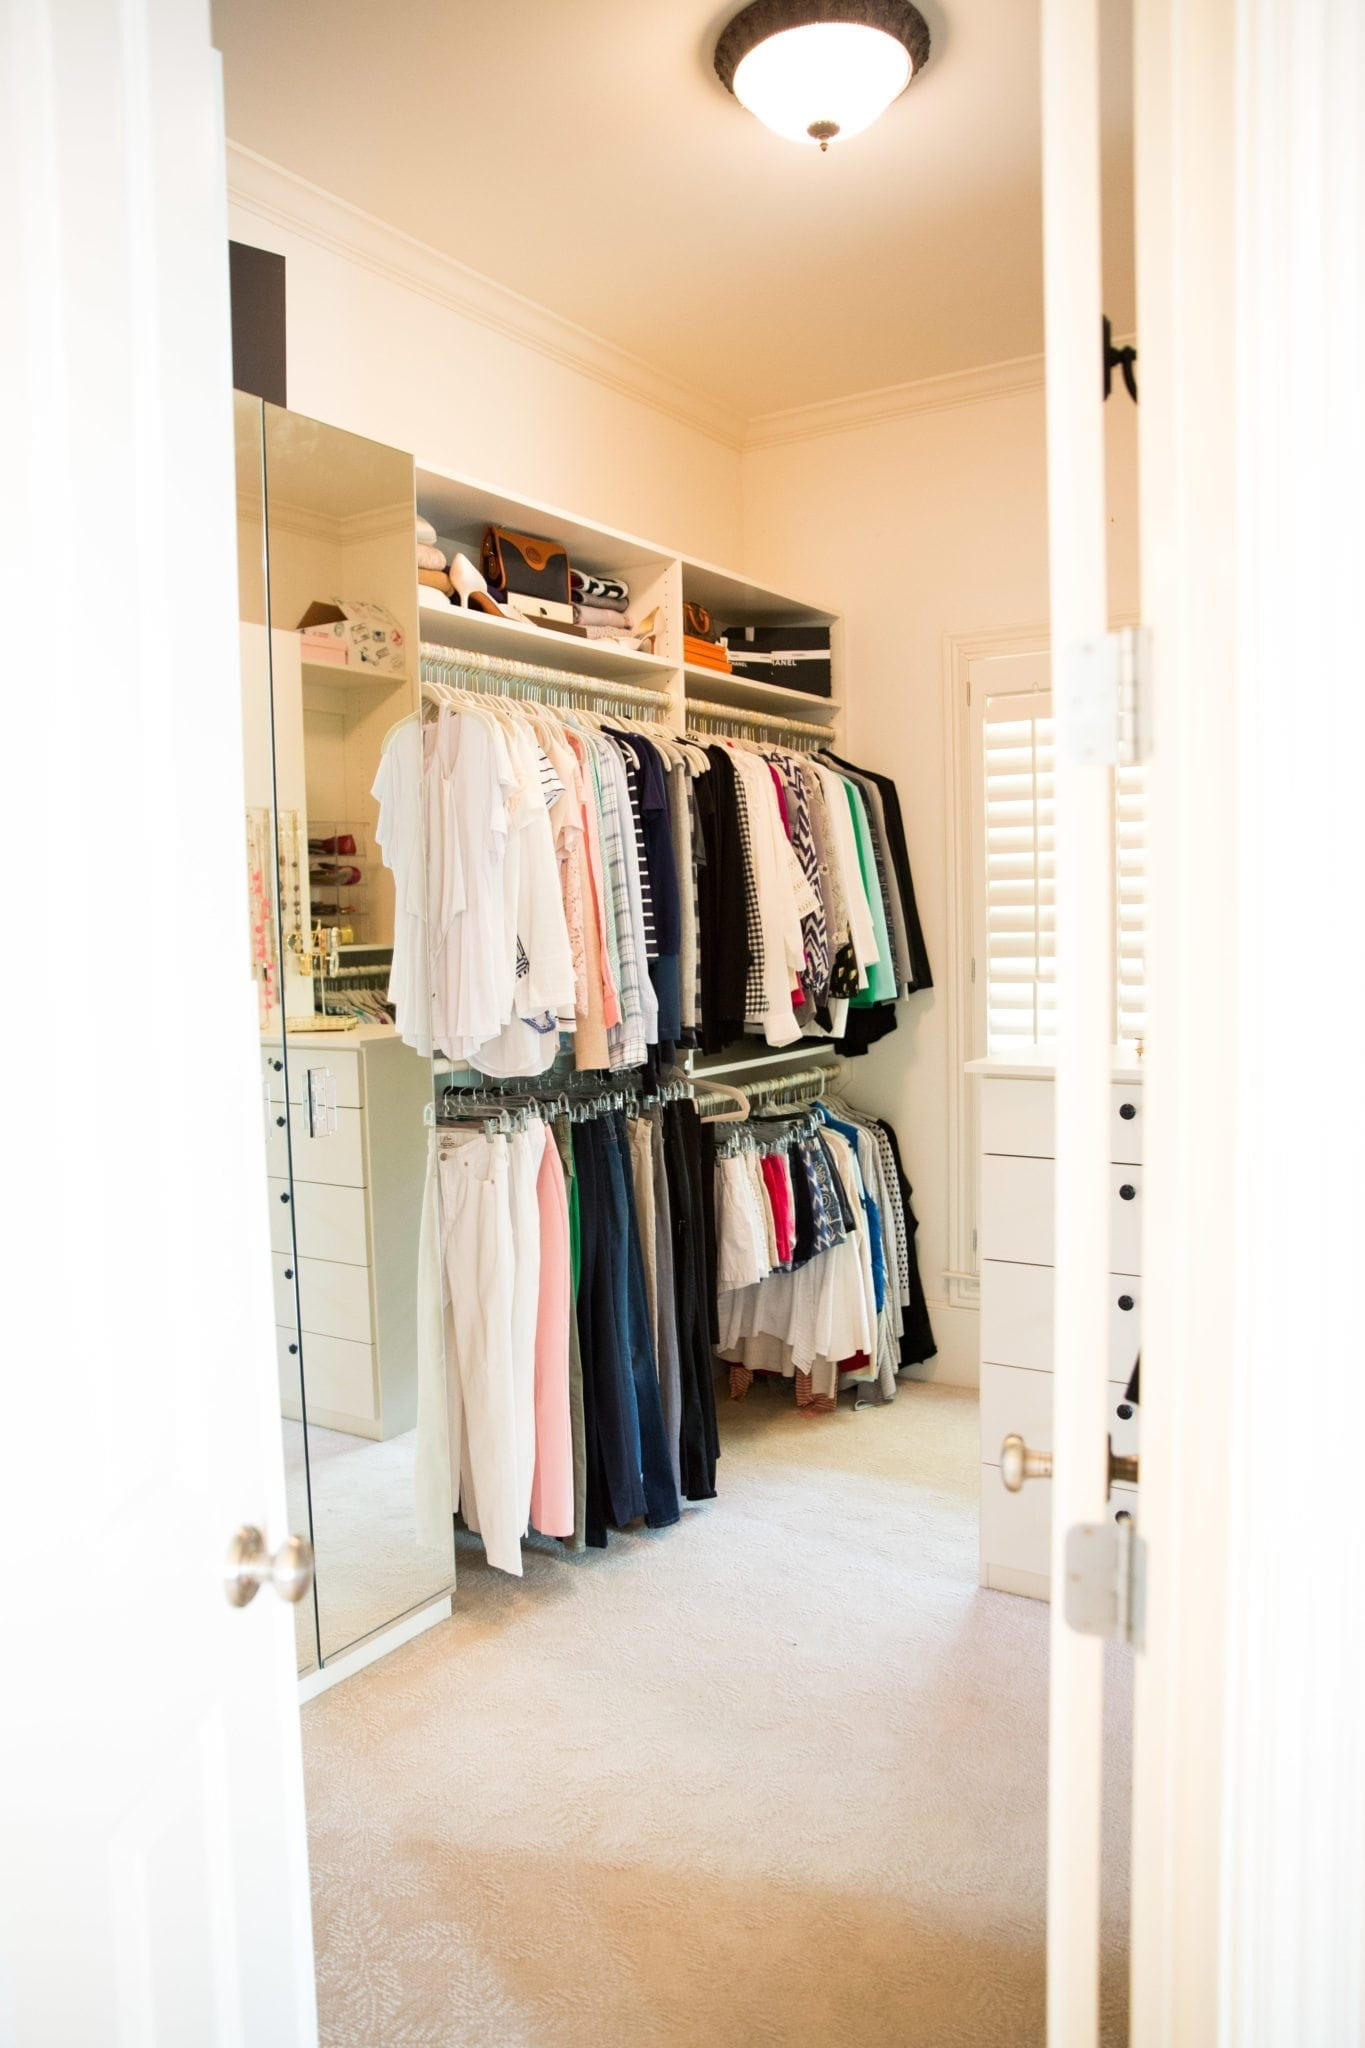 How to organize walk in closets.